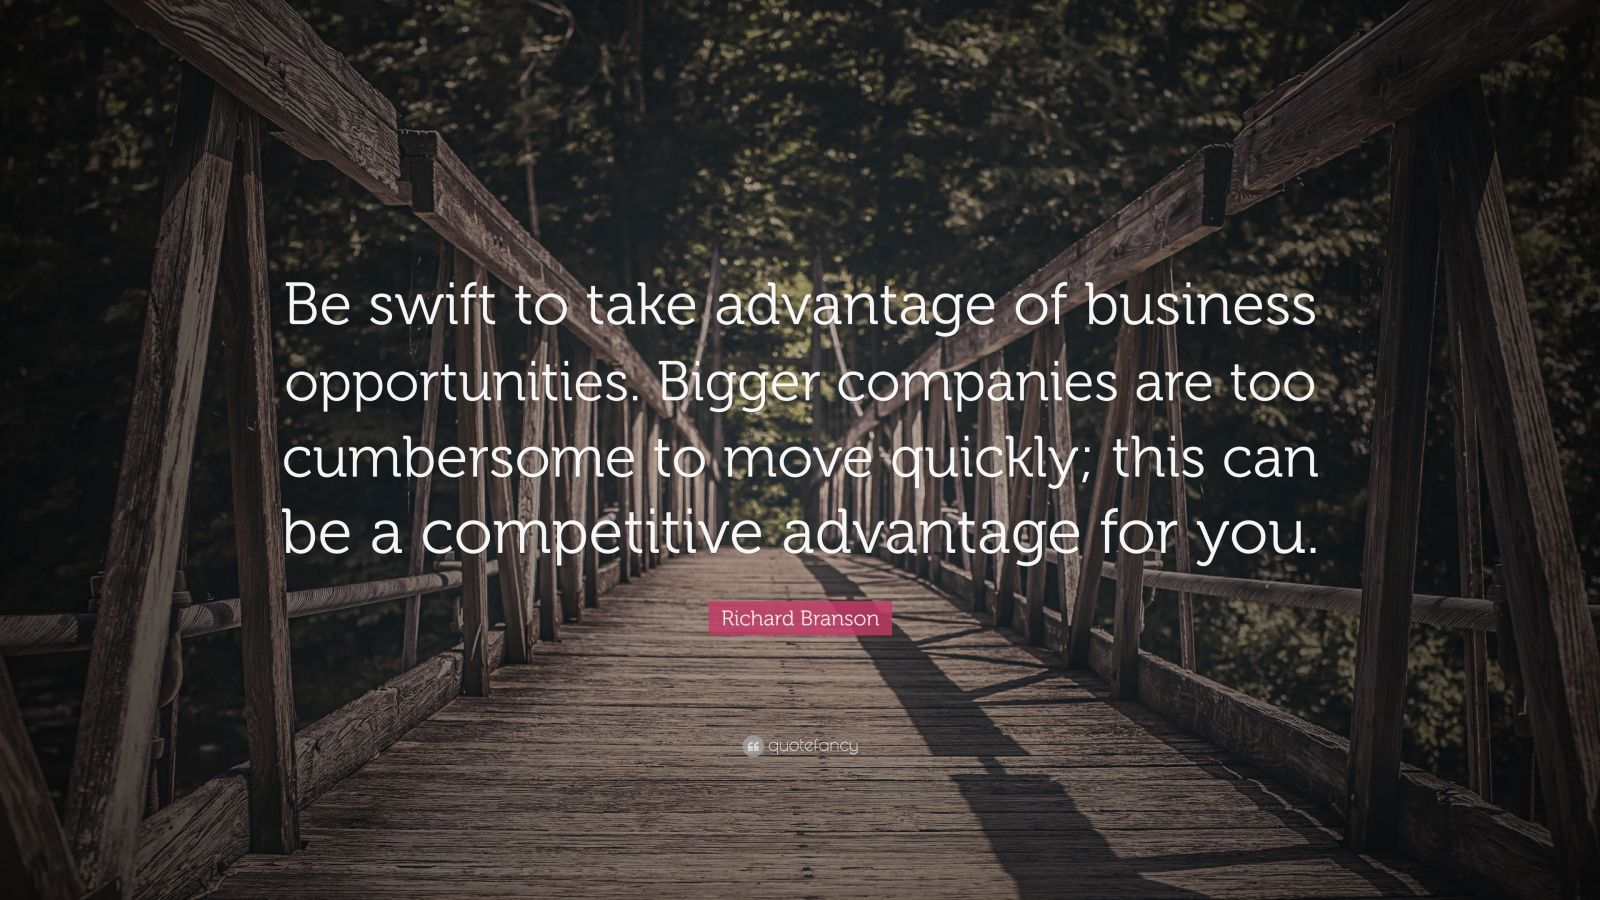 """Richard Branson Quote: """"Be swift to take advantage of business opportunities. Bigger companies are too cumbersome to move quickly; this can be a competitive advantage for you."""""""